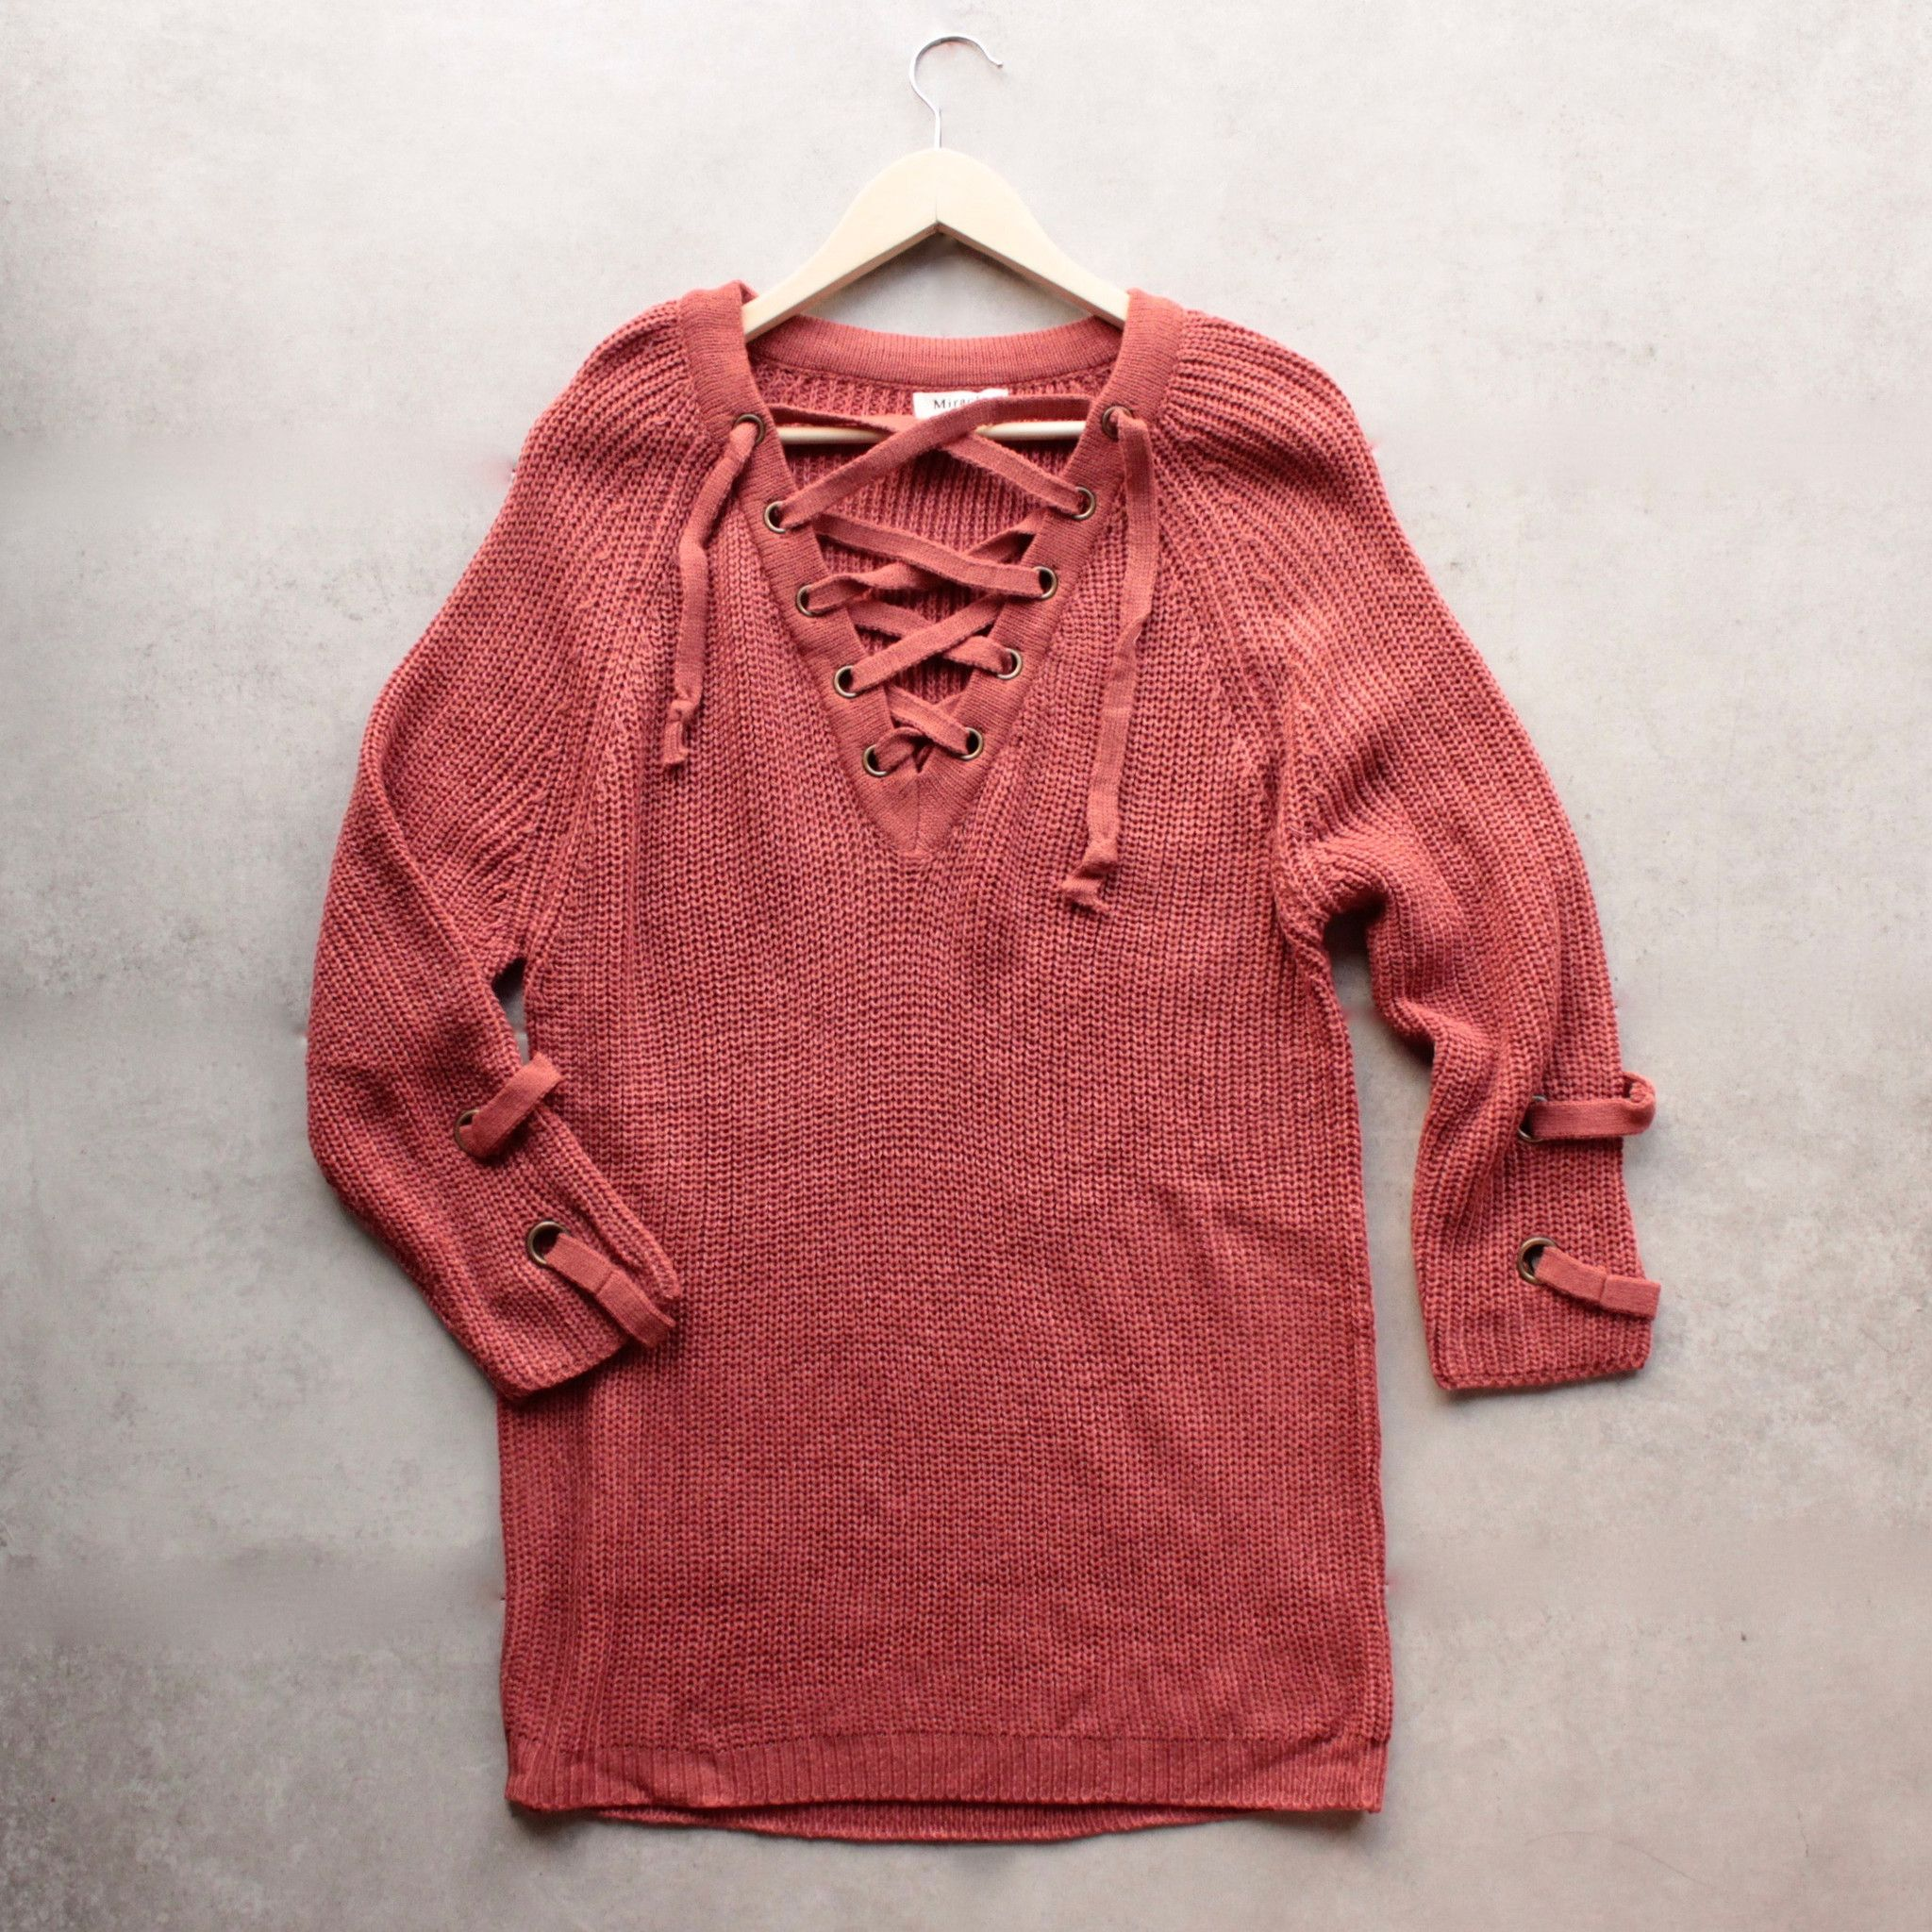 Lace up grommet sweater - marsala  1e98a1676